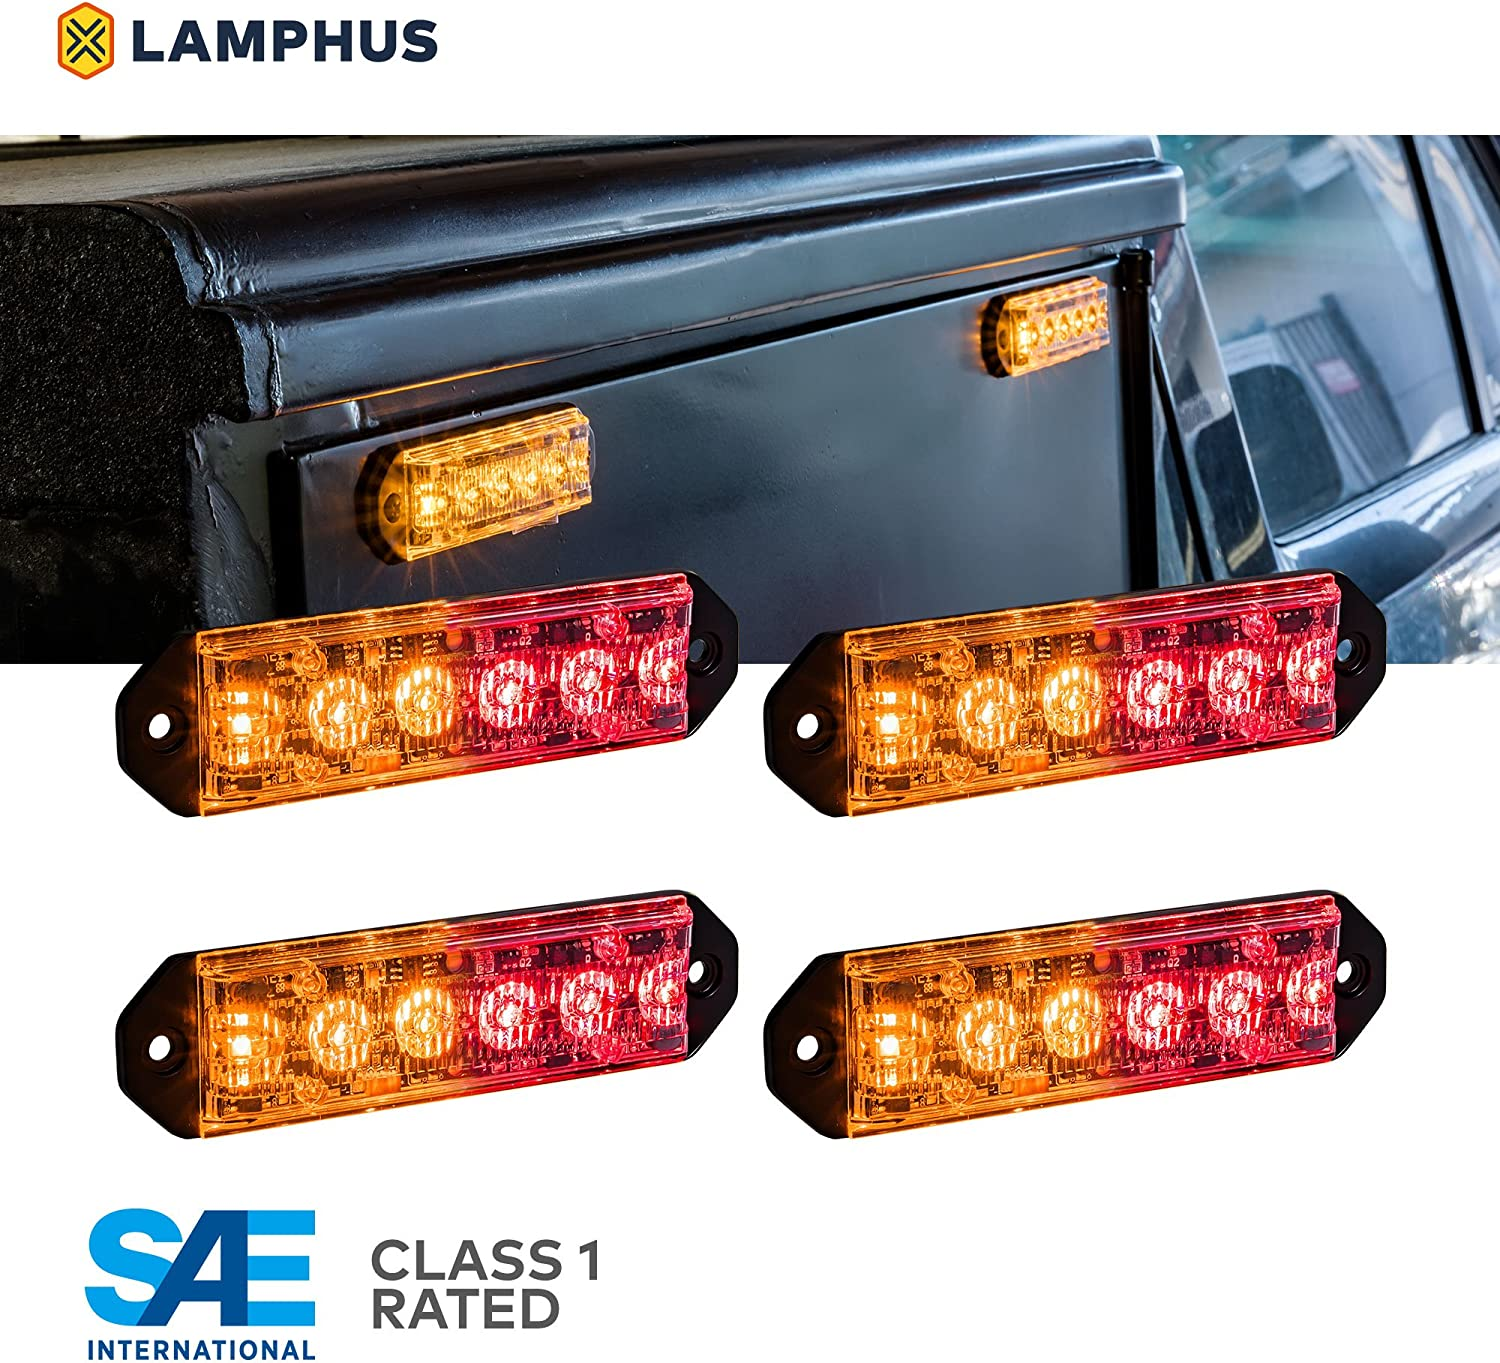 Surface-Mount 72 Flash Mode Emergency Grille Police Light for Volunteer Firefighter PlanarFlash 6W Blue RED LED Flashing Strobe Light Head Ultra Flat Multi Units Sync-able SAE Class 1